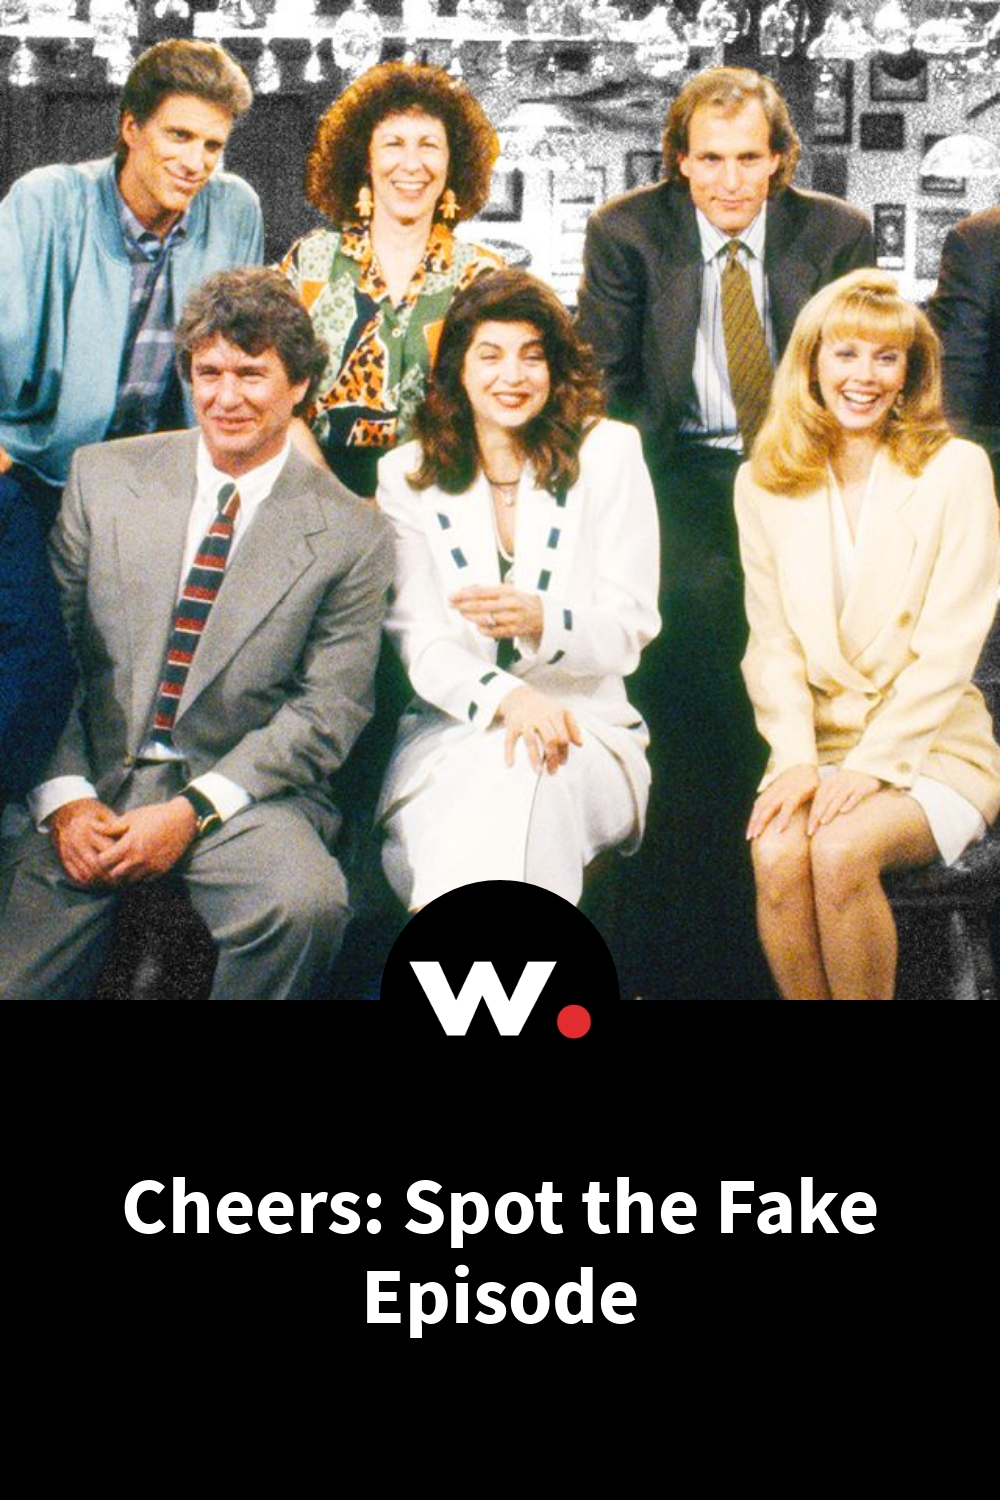 Cheers: Spot the Fake Episode